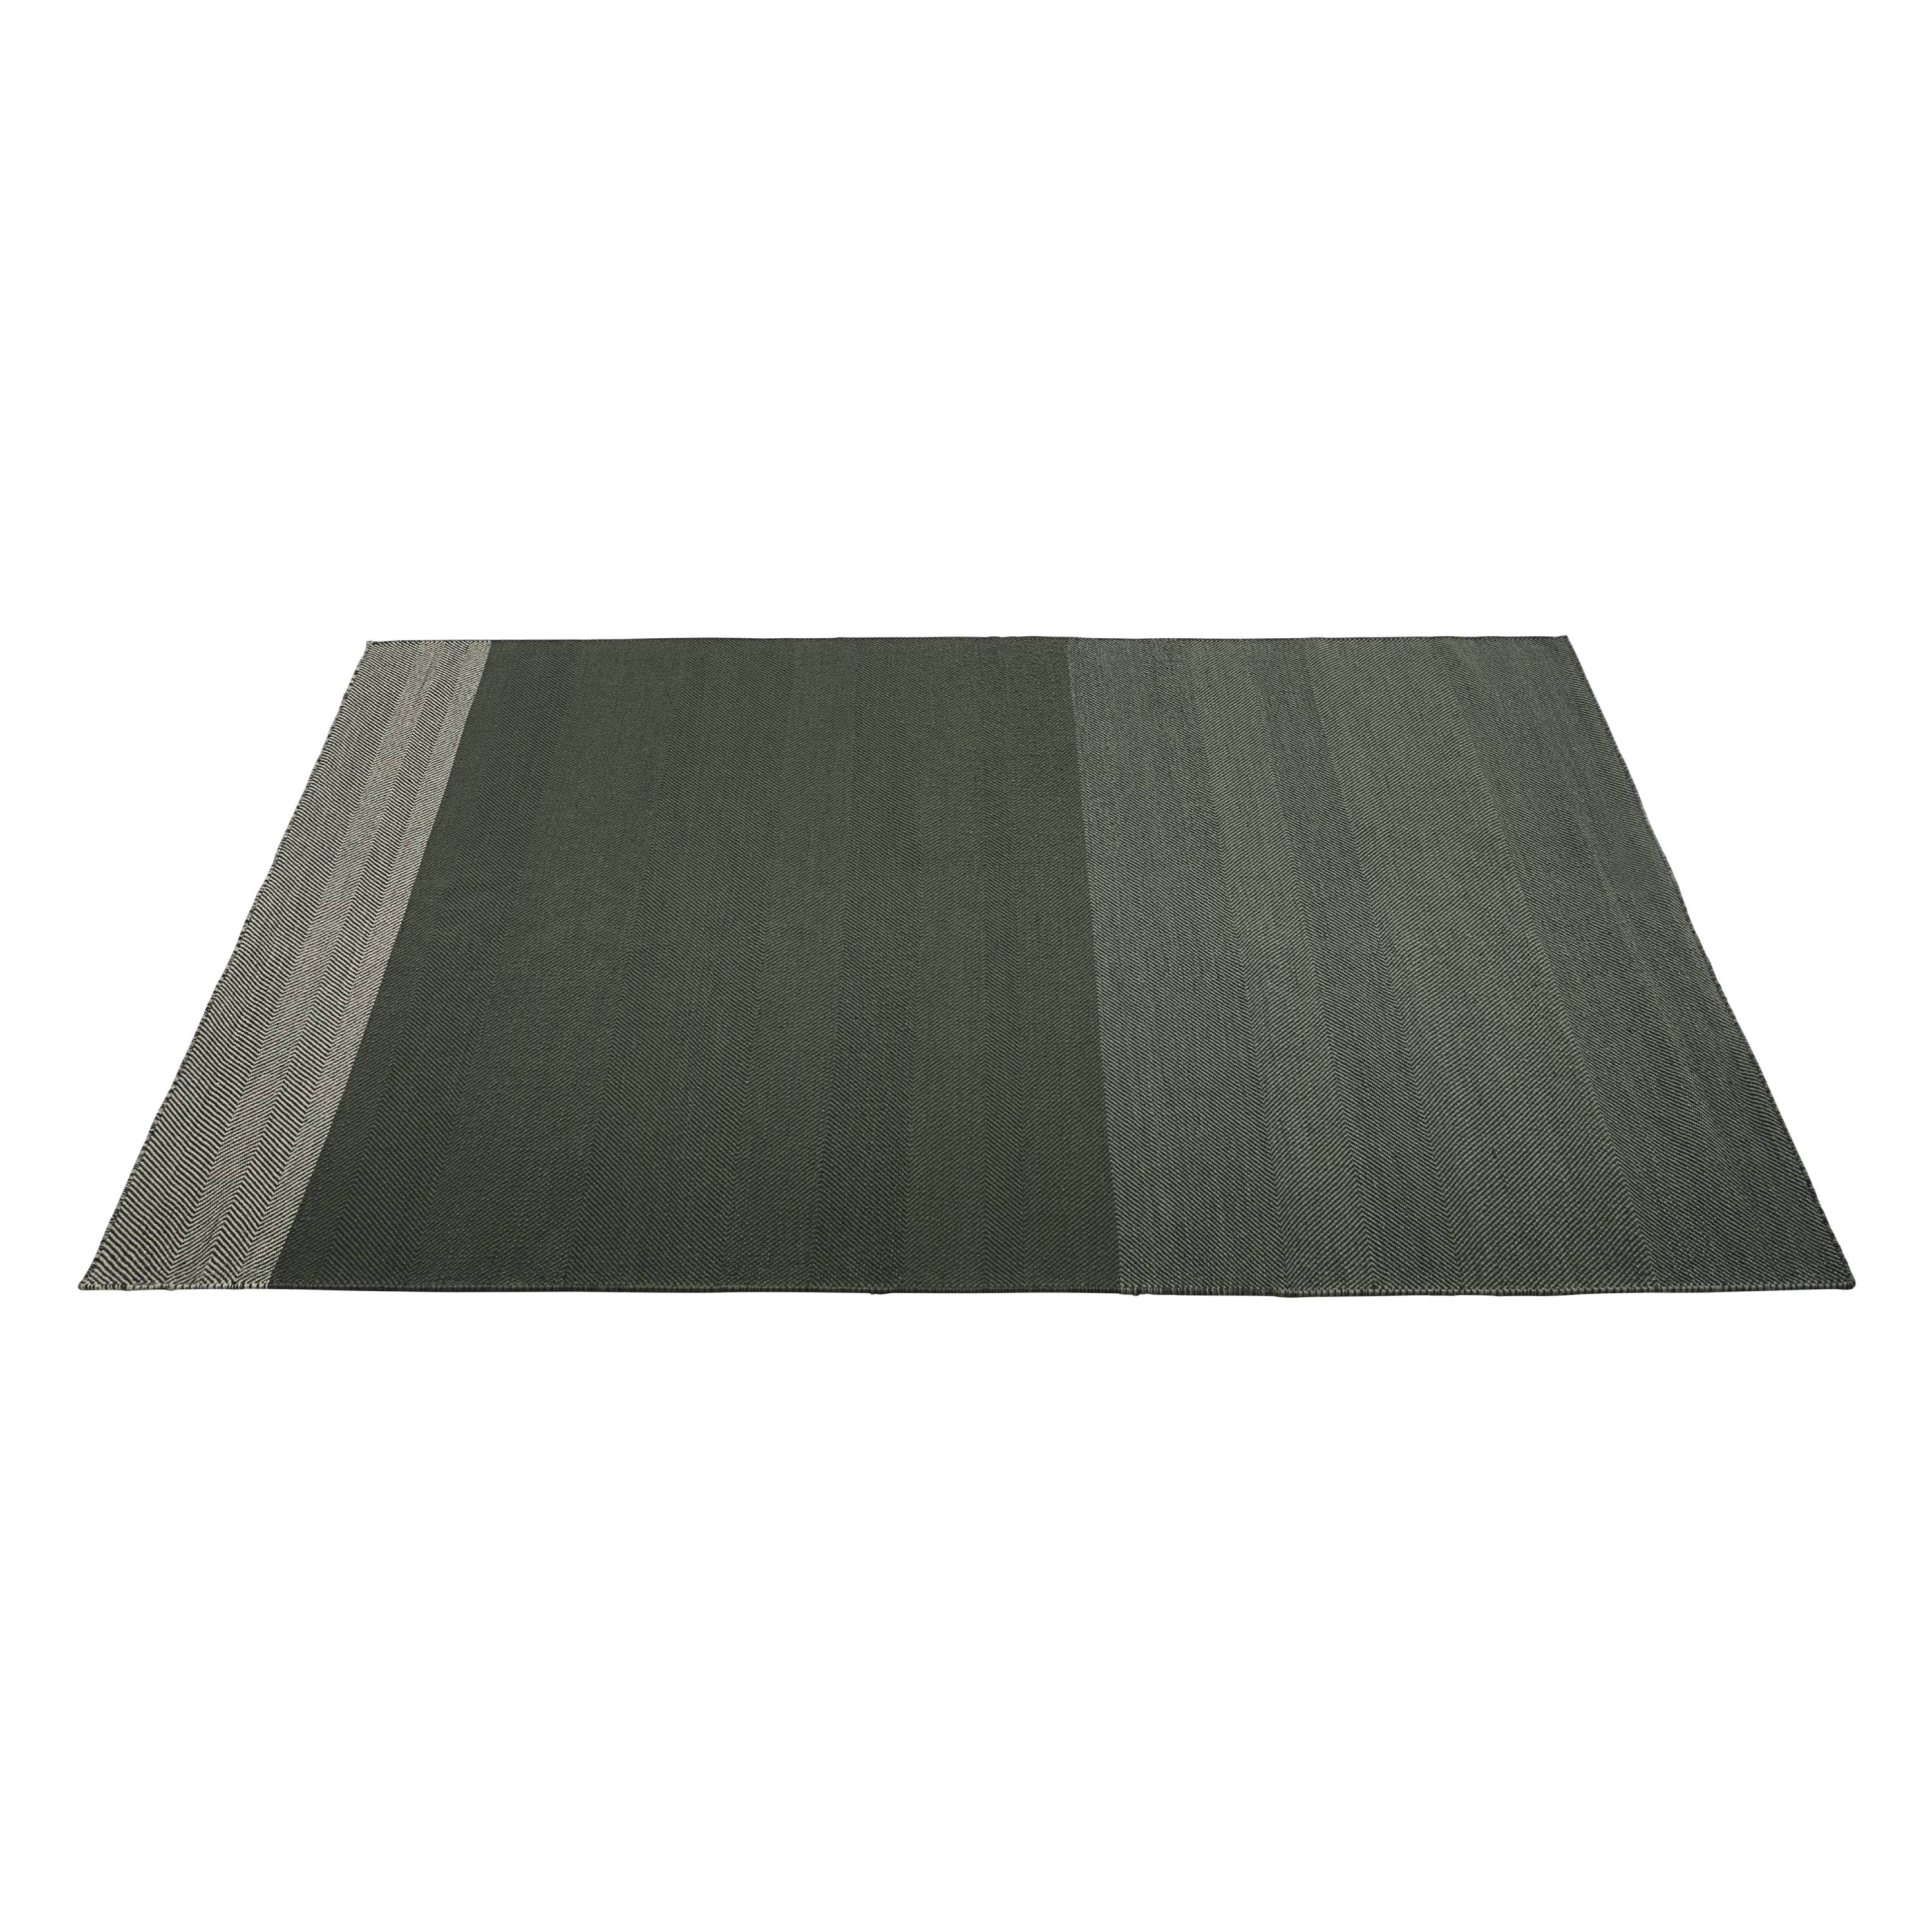 Varjo Rug: Large + Dark Green